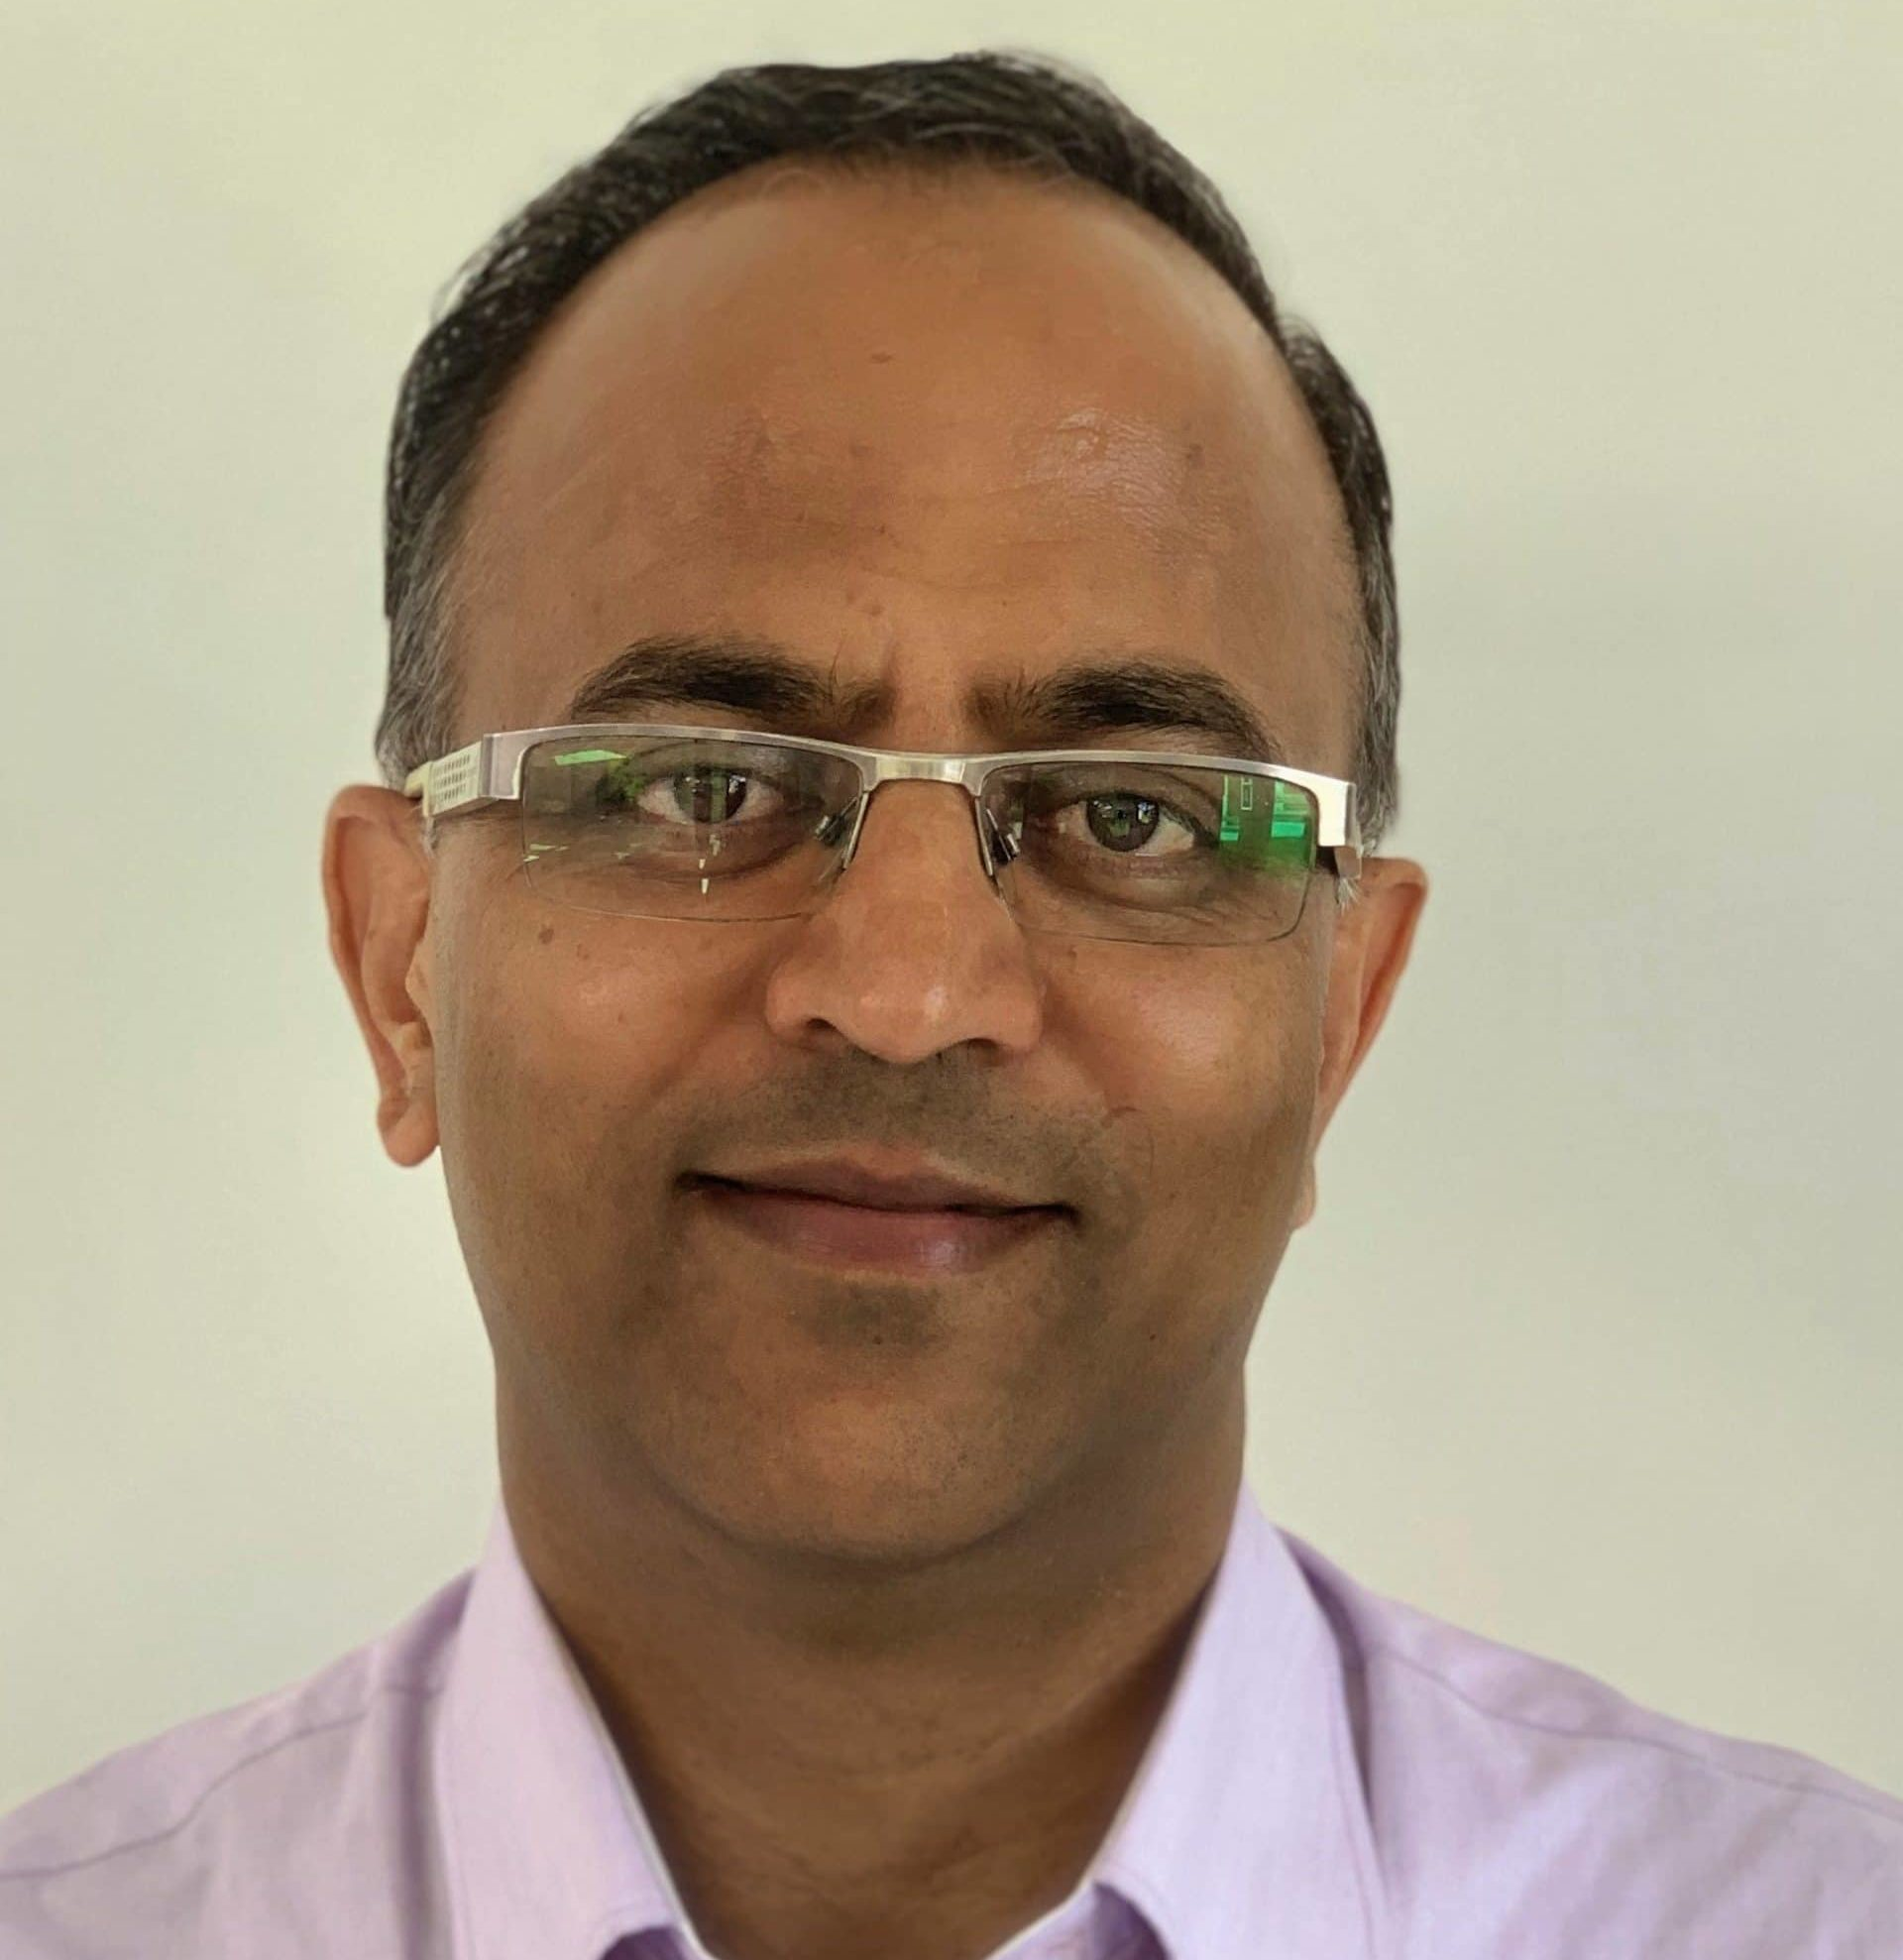 Ashish Kumar Gupta, HCL's Corporate Vice President and Head for Europe and Africa